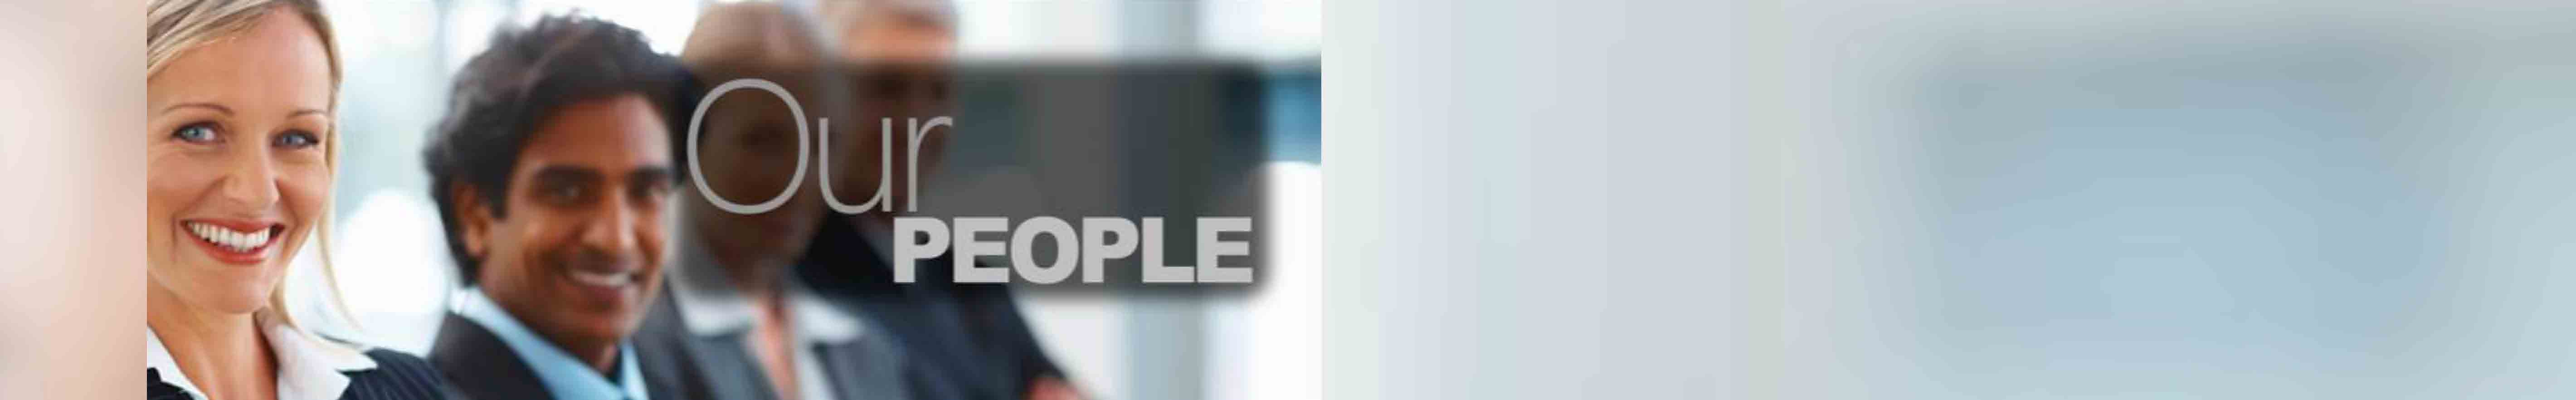 Our People -- Regulatory Affairs, Quality, Statistics, Accounting, Subject Matter Experts, SME